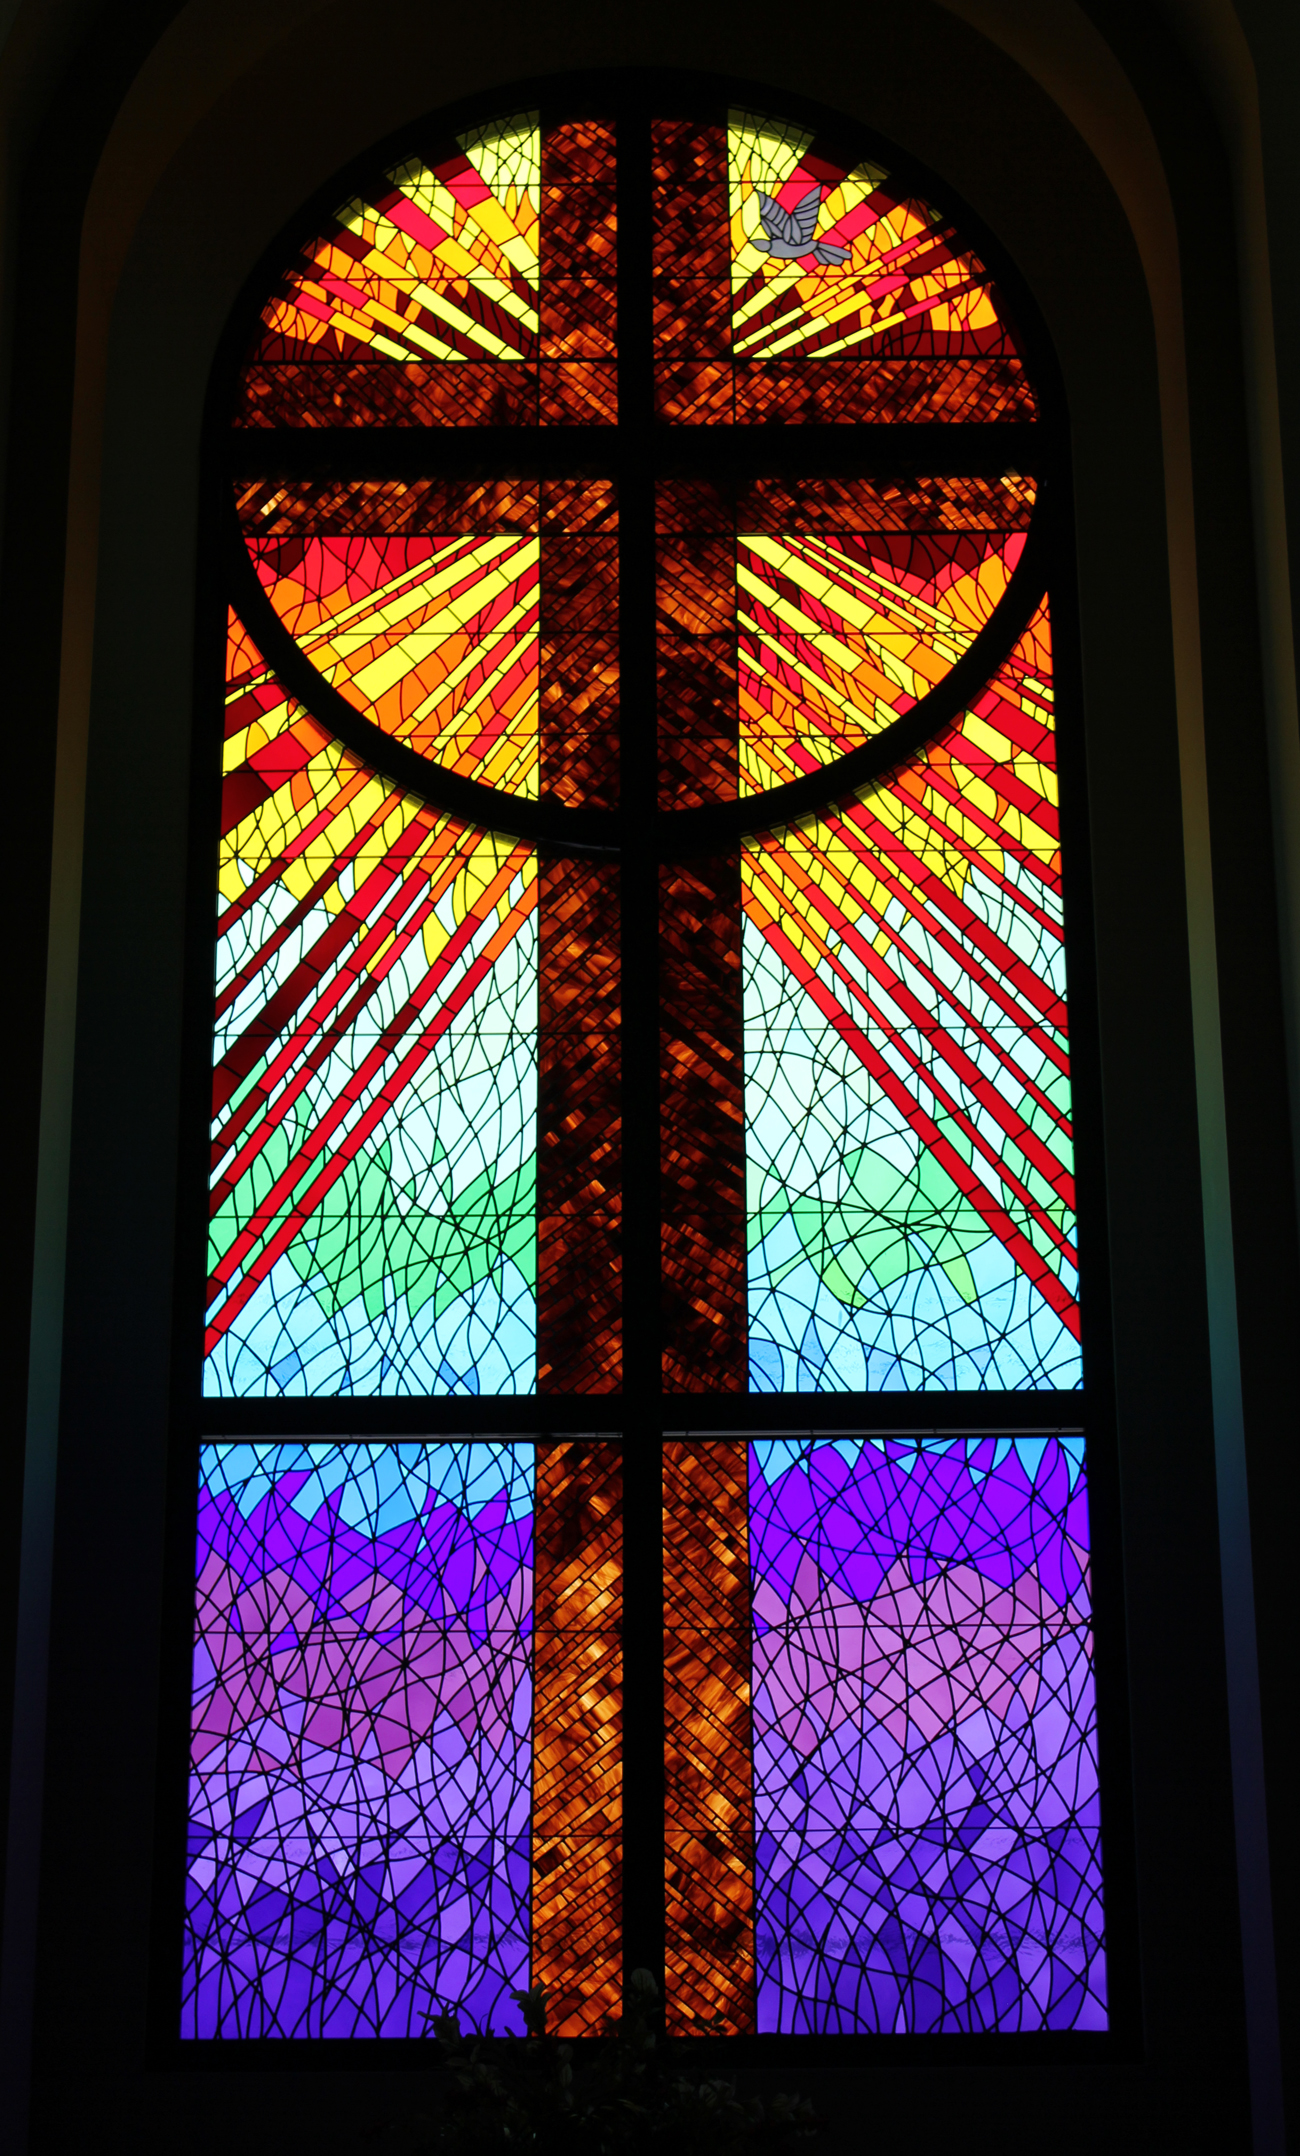 Stained Glass Of The First United Methodist Church In Pflugerville, Texas